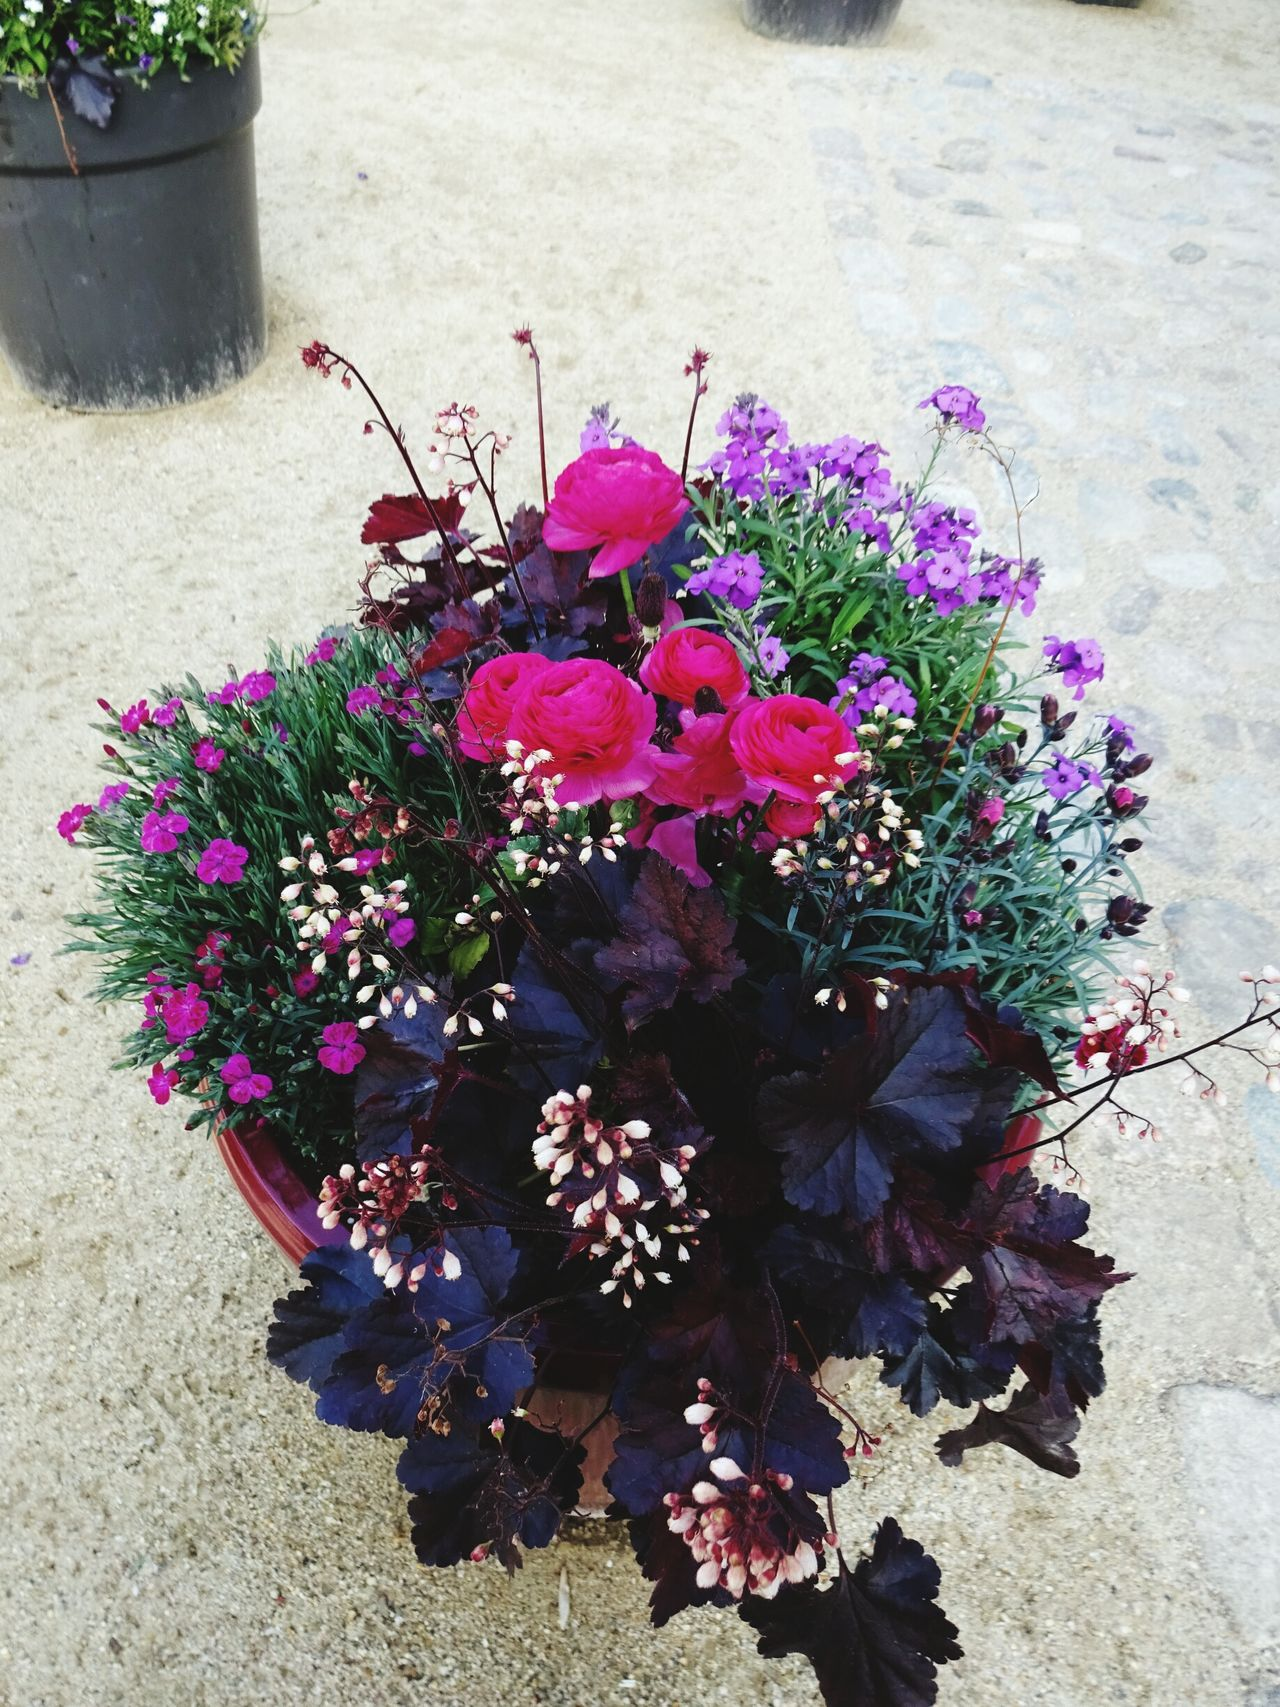 Flower Freshness Growth Nature Fragility Beauty In Nature Purple Plant Pink Color Petal No People Flower Head Outdoors Day Blooming Close-up